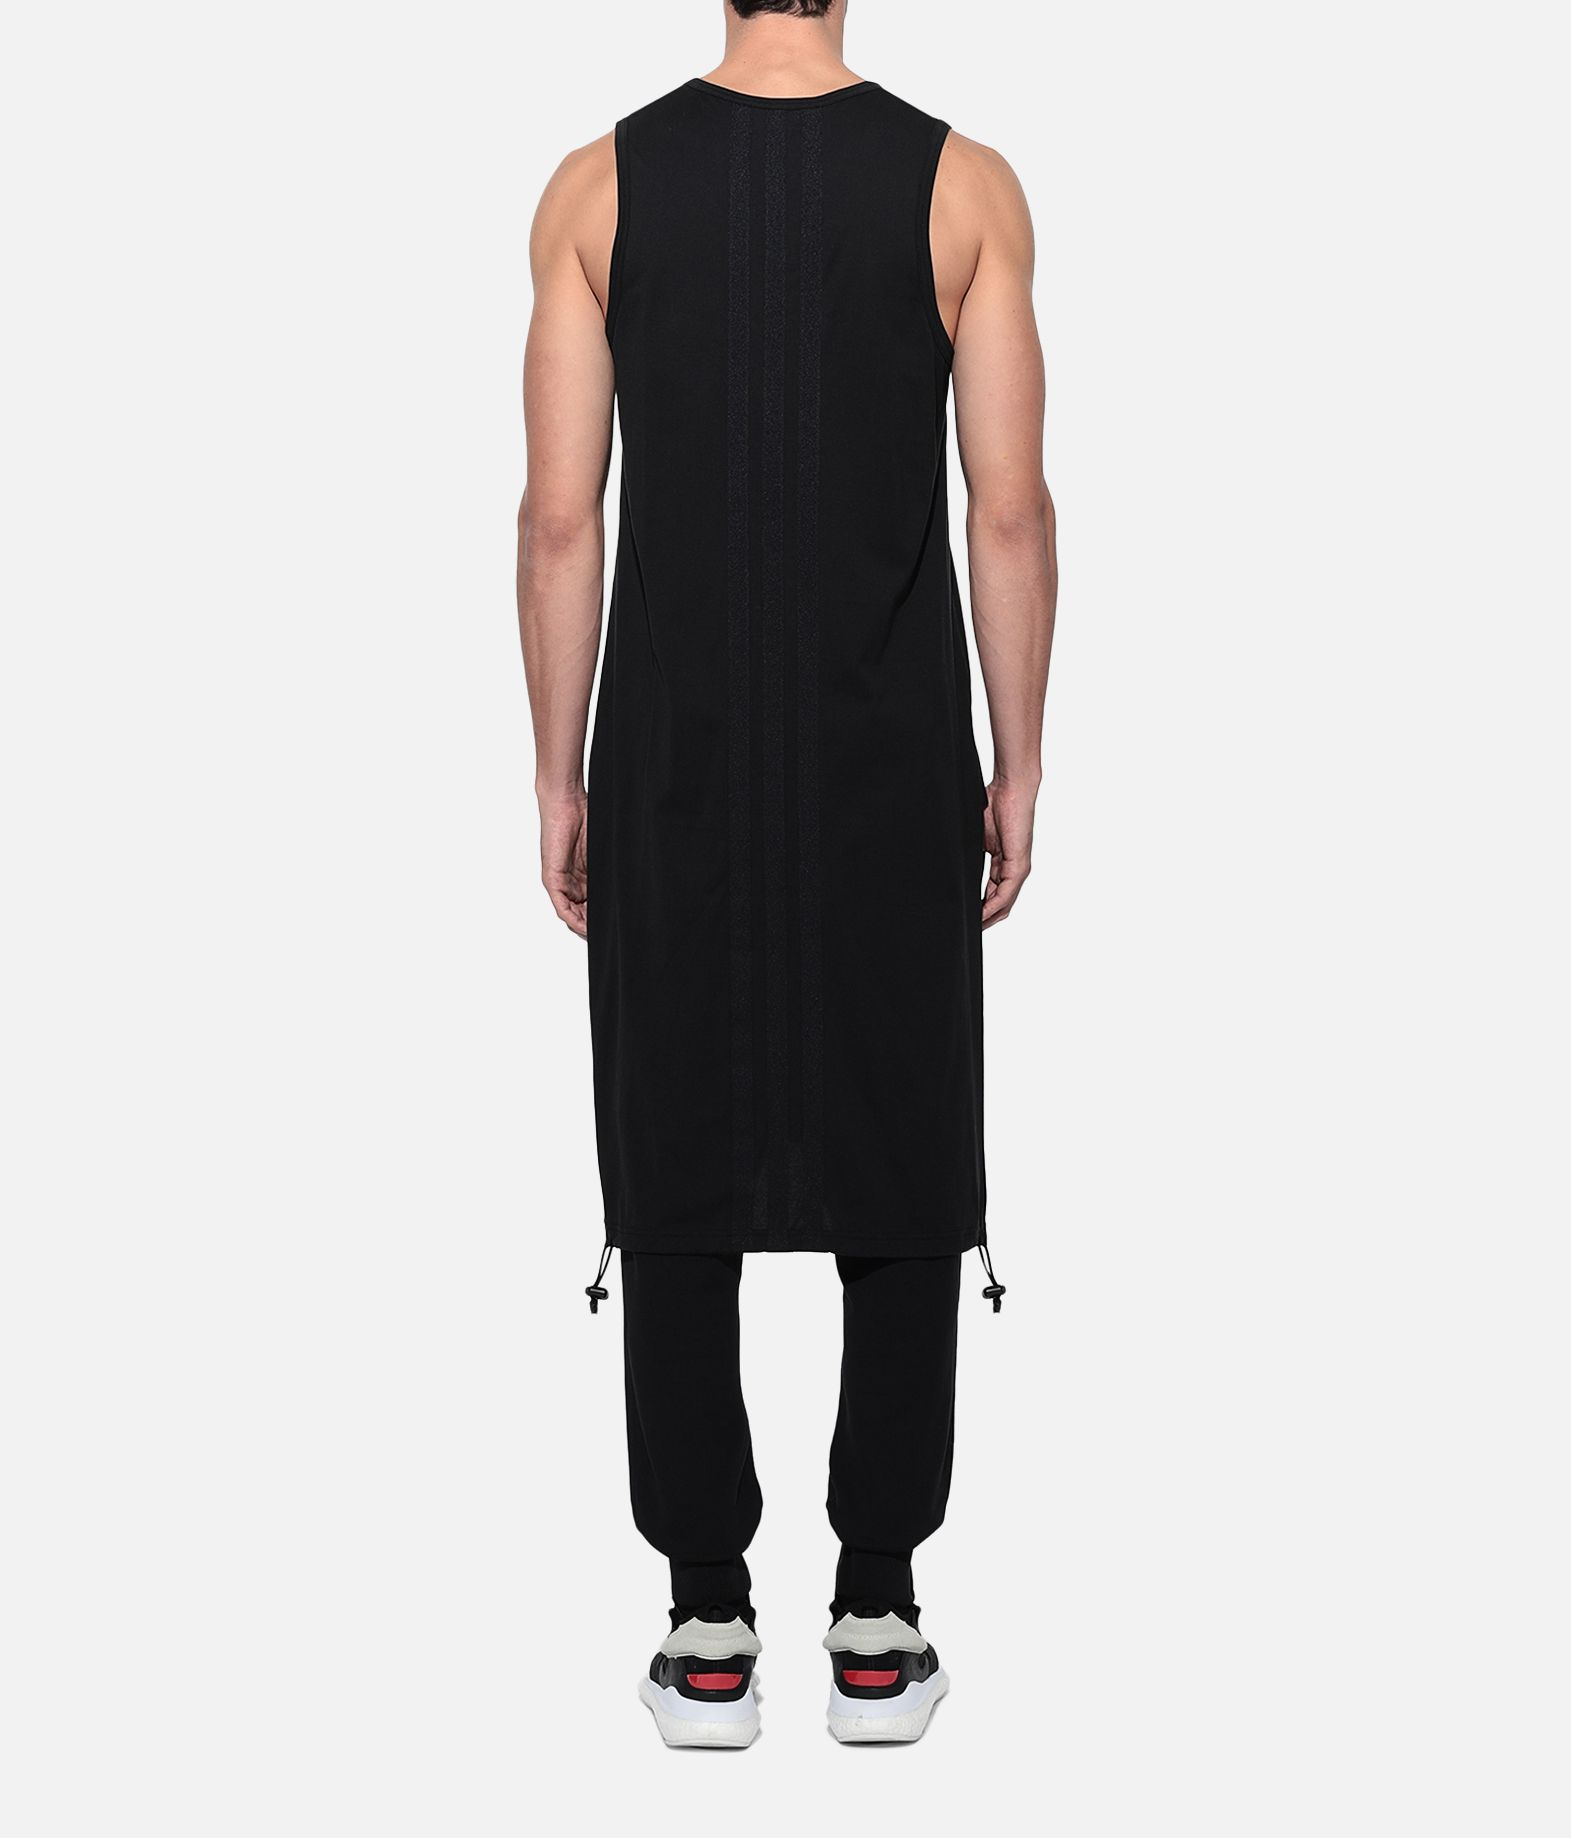 Y-3 Y-3 Drawstring Long Tank Top  Tank Man d